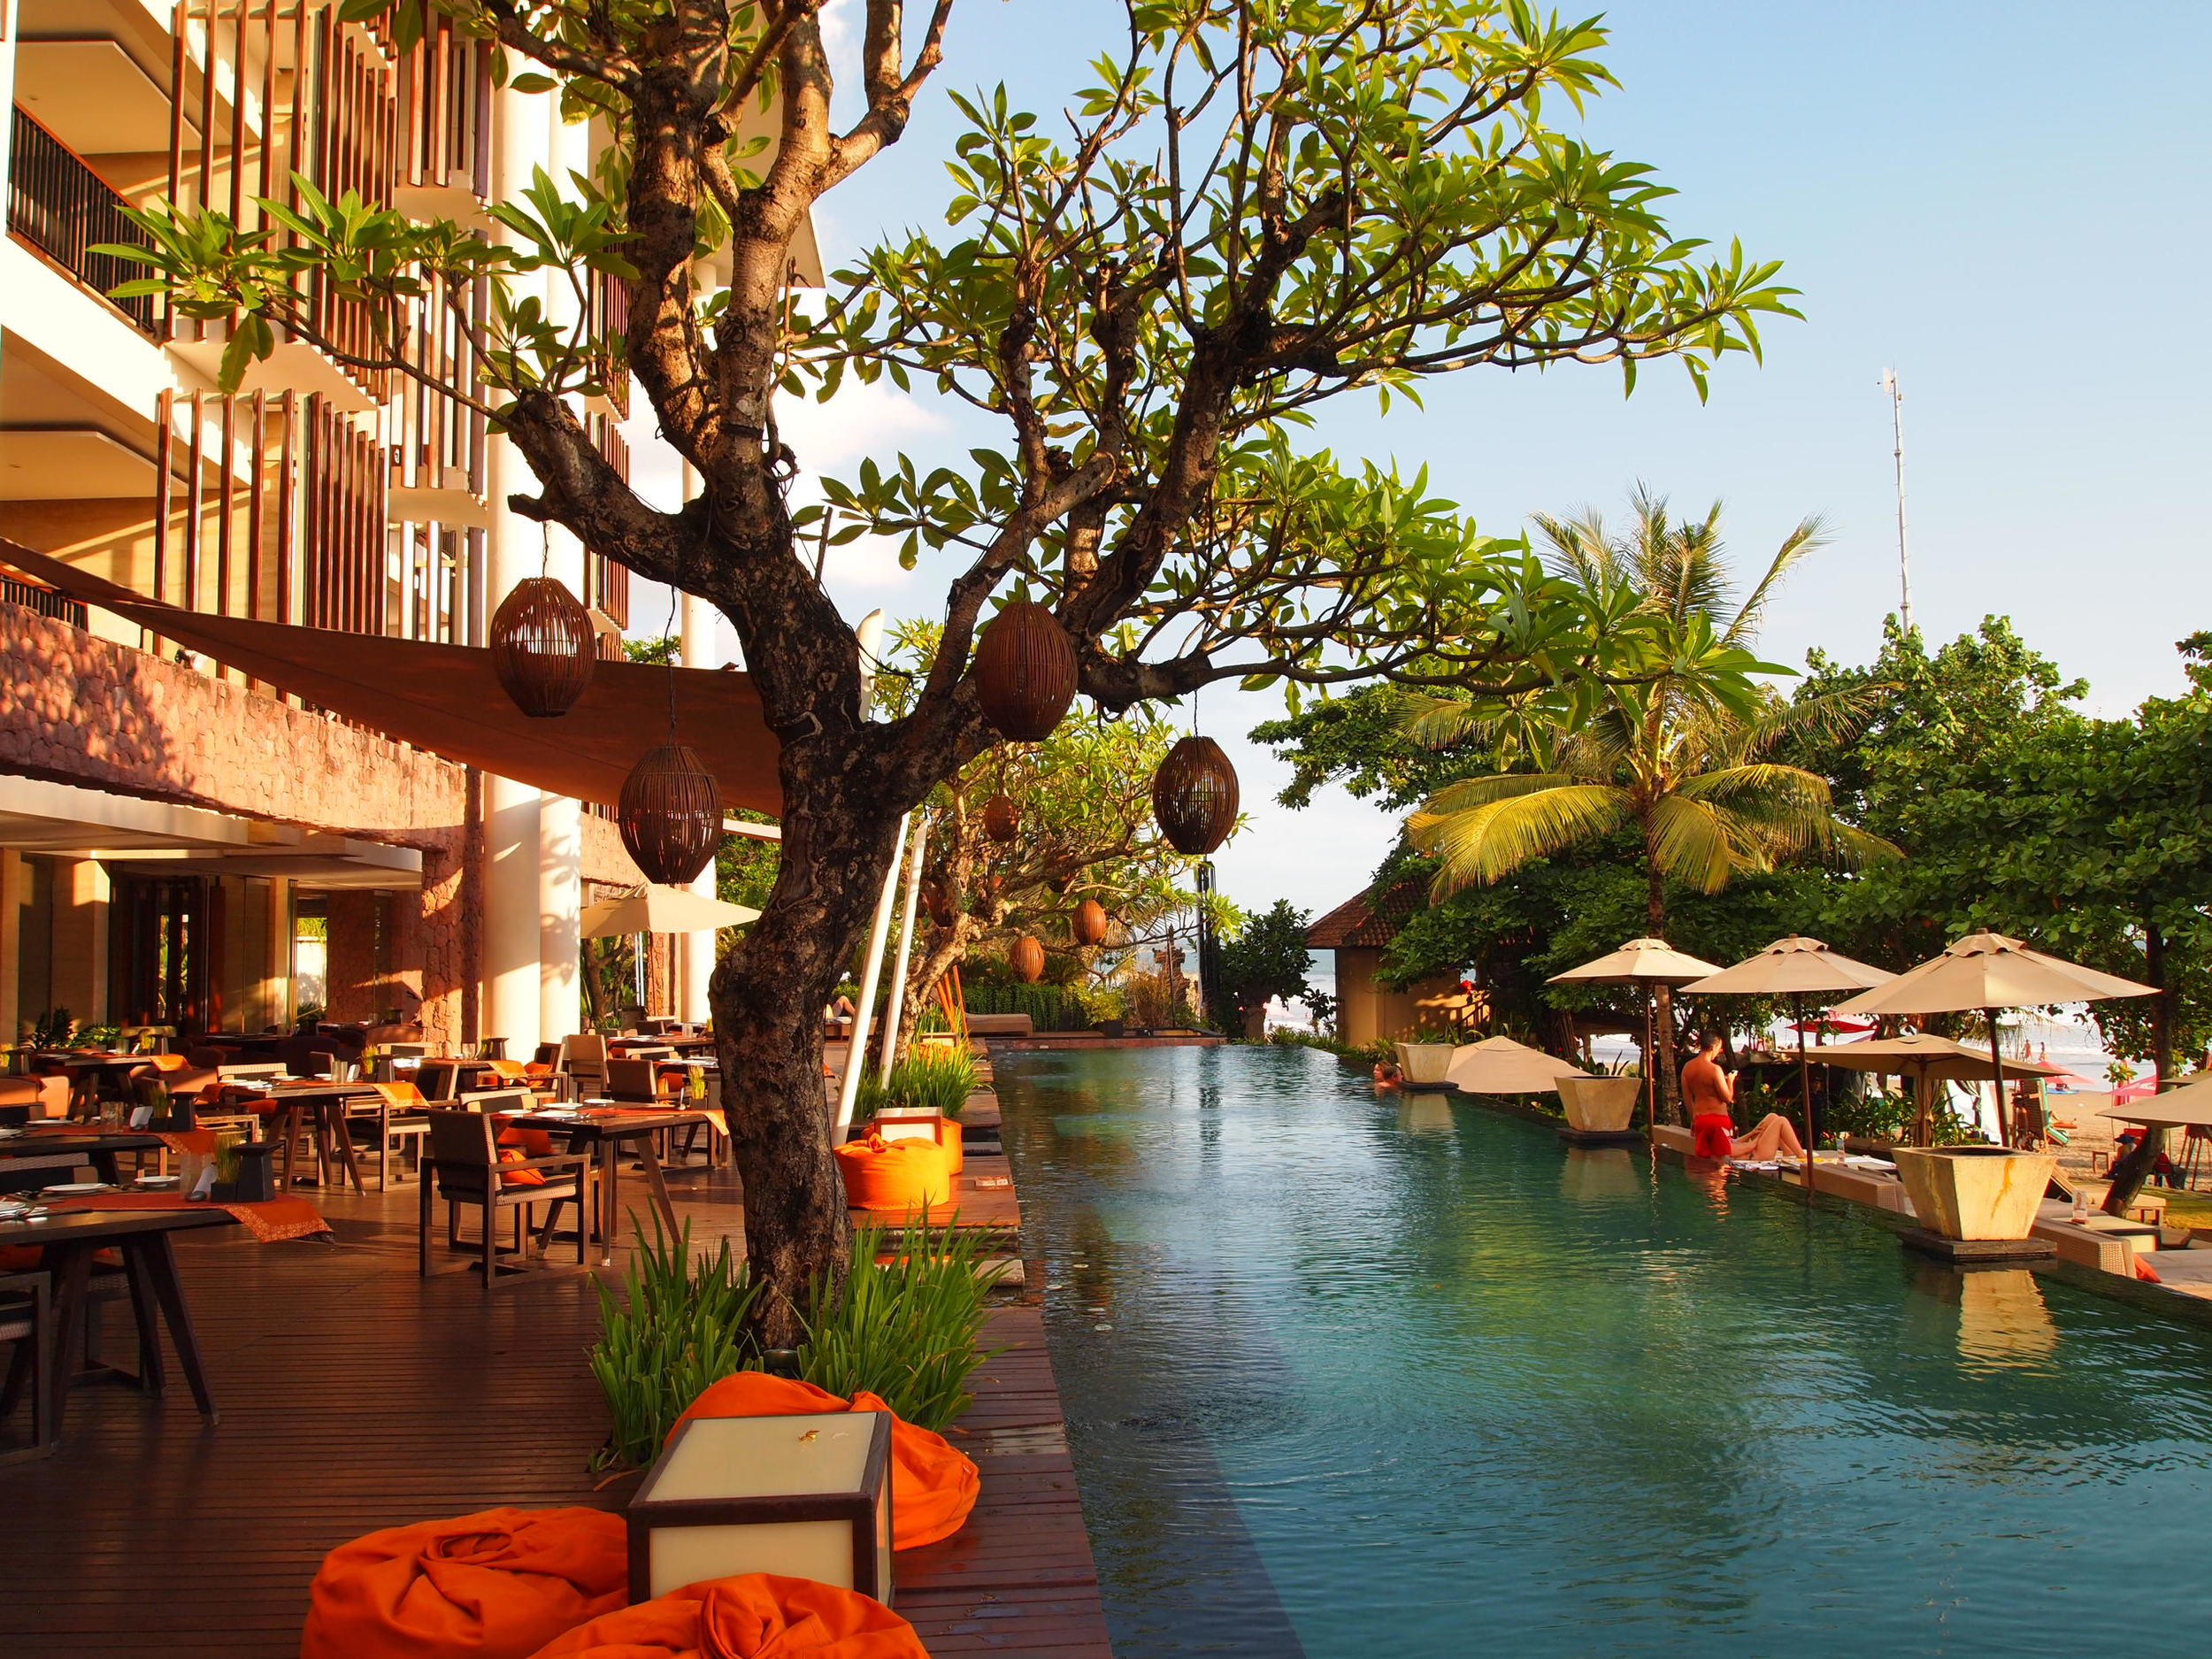 Bali. Scoping out the  best beach hotels in Bali . Pictured here, one of my beachside stays, the Anantara Hotel Seminyak.